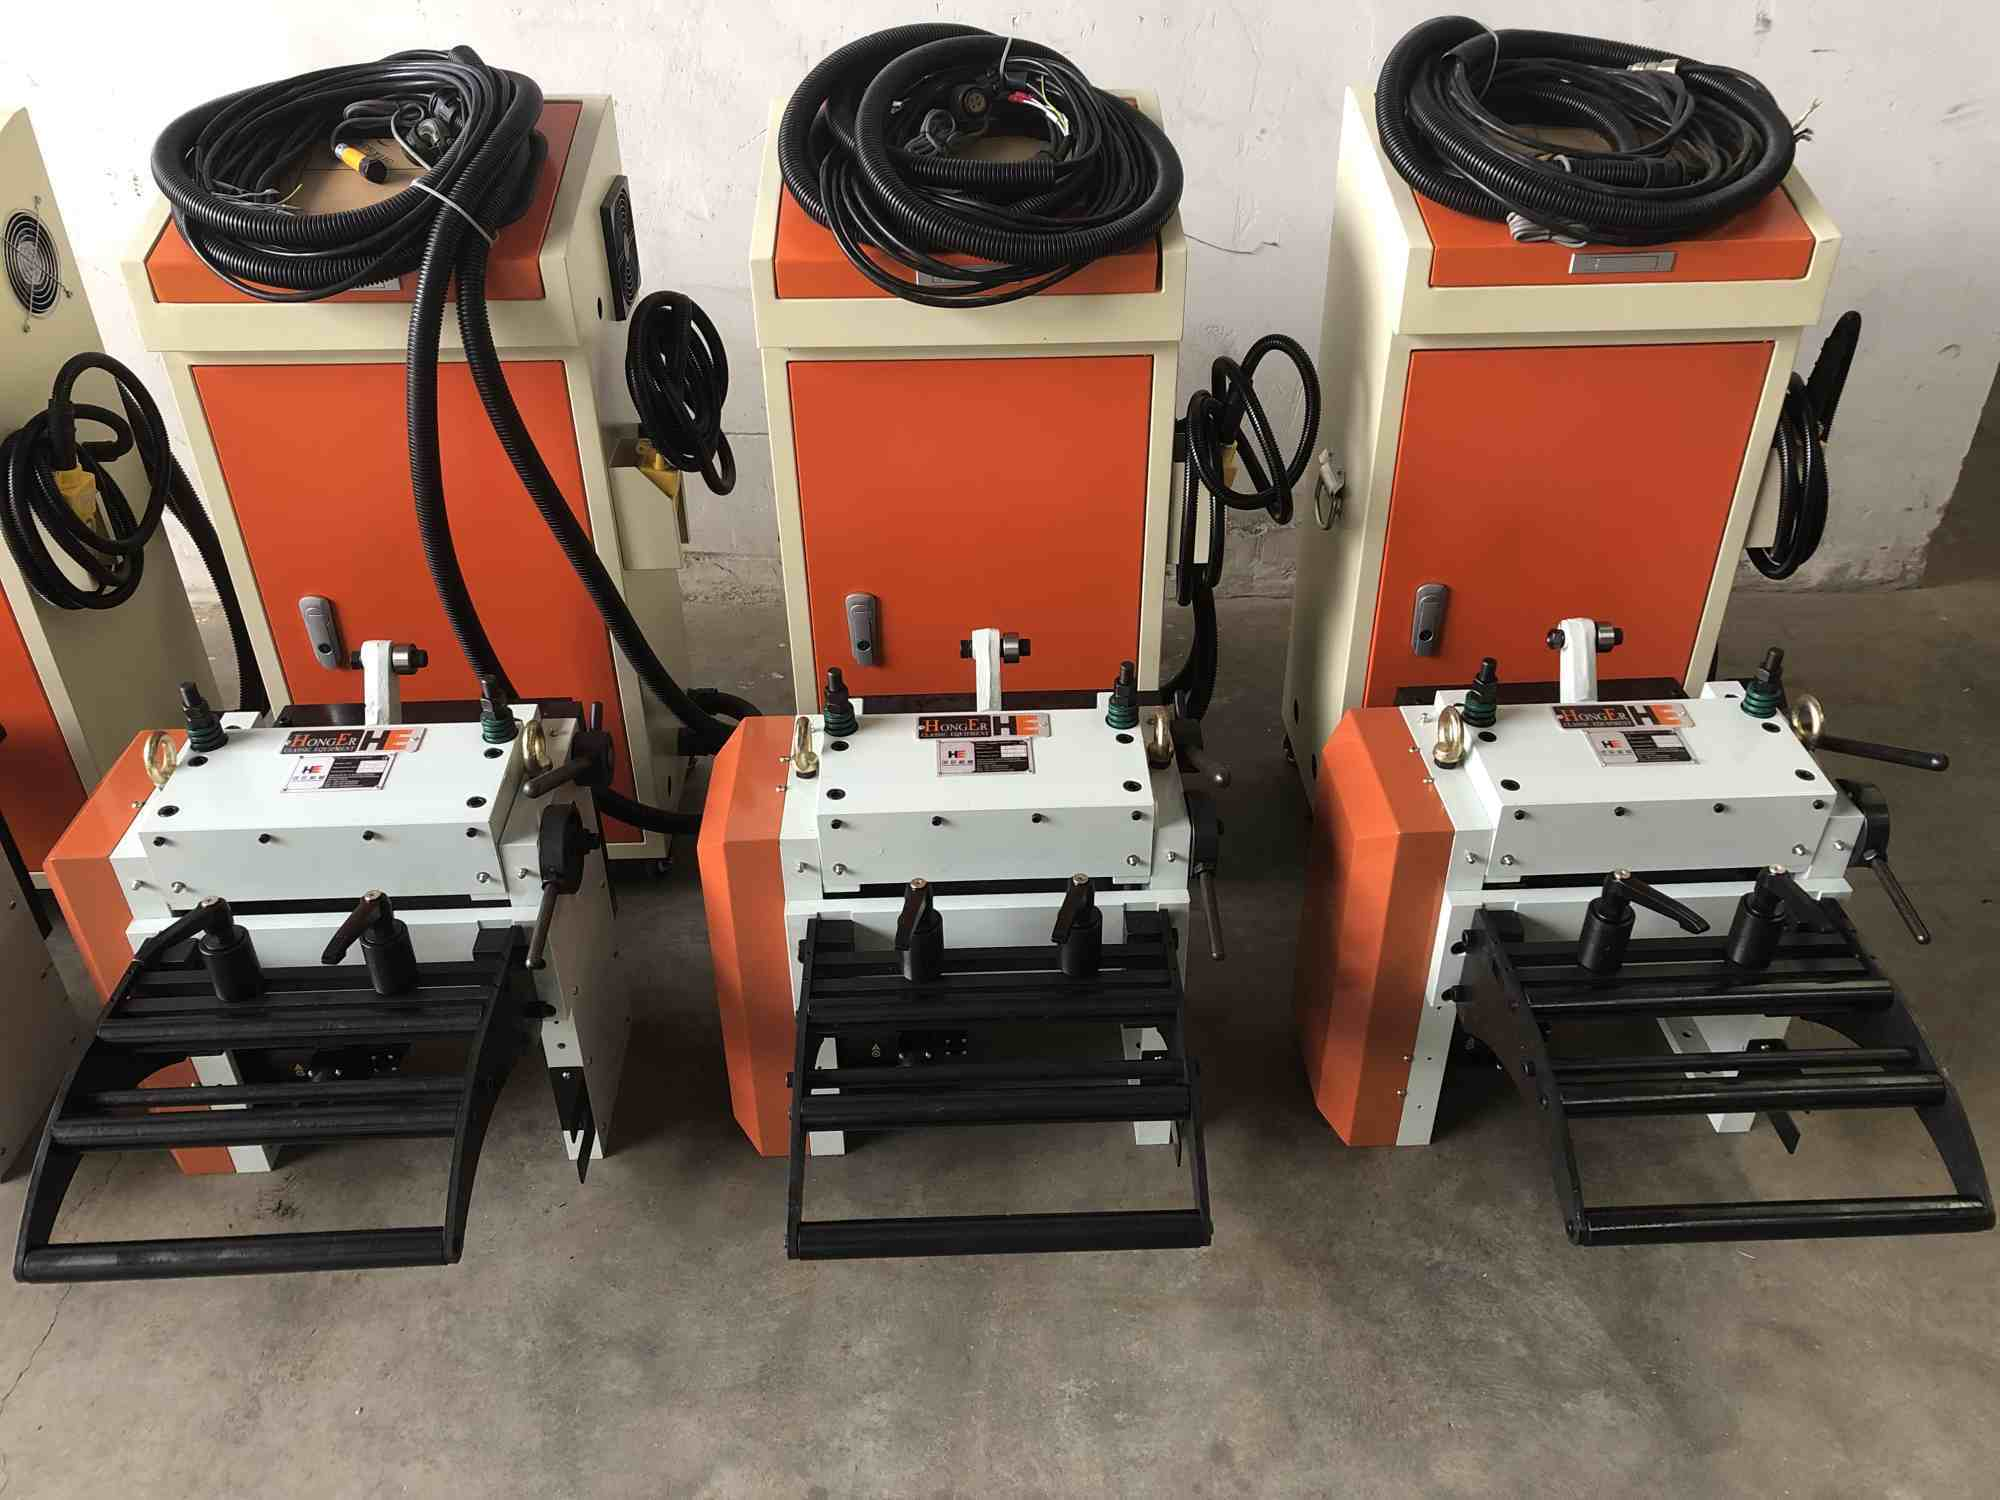 http://www.feedermachine.com/pid18184985/RNC-servo-feeder-machine-for-metal-strip.htm